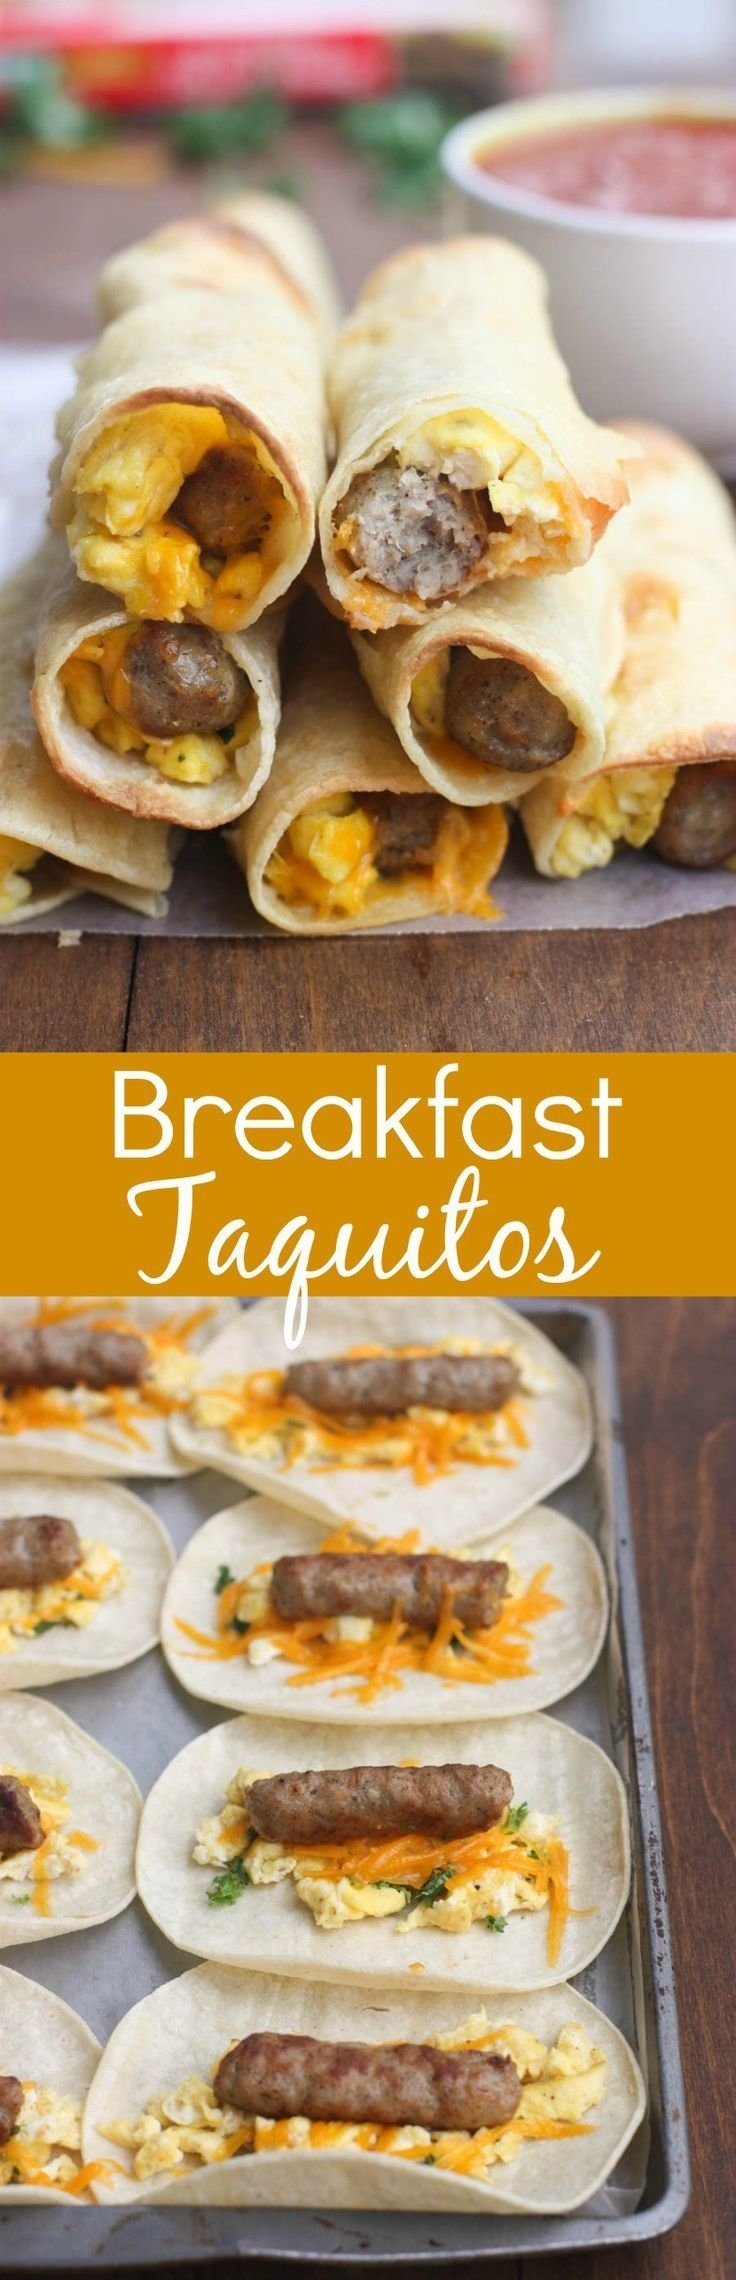 10 Best Breakfast Ideas For A Group 596 best breakfast buffet ideas images on pinterest breakfast